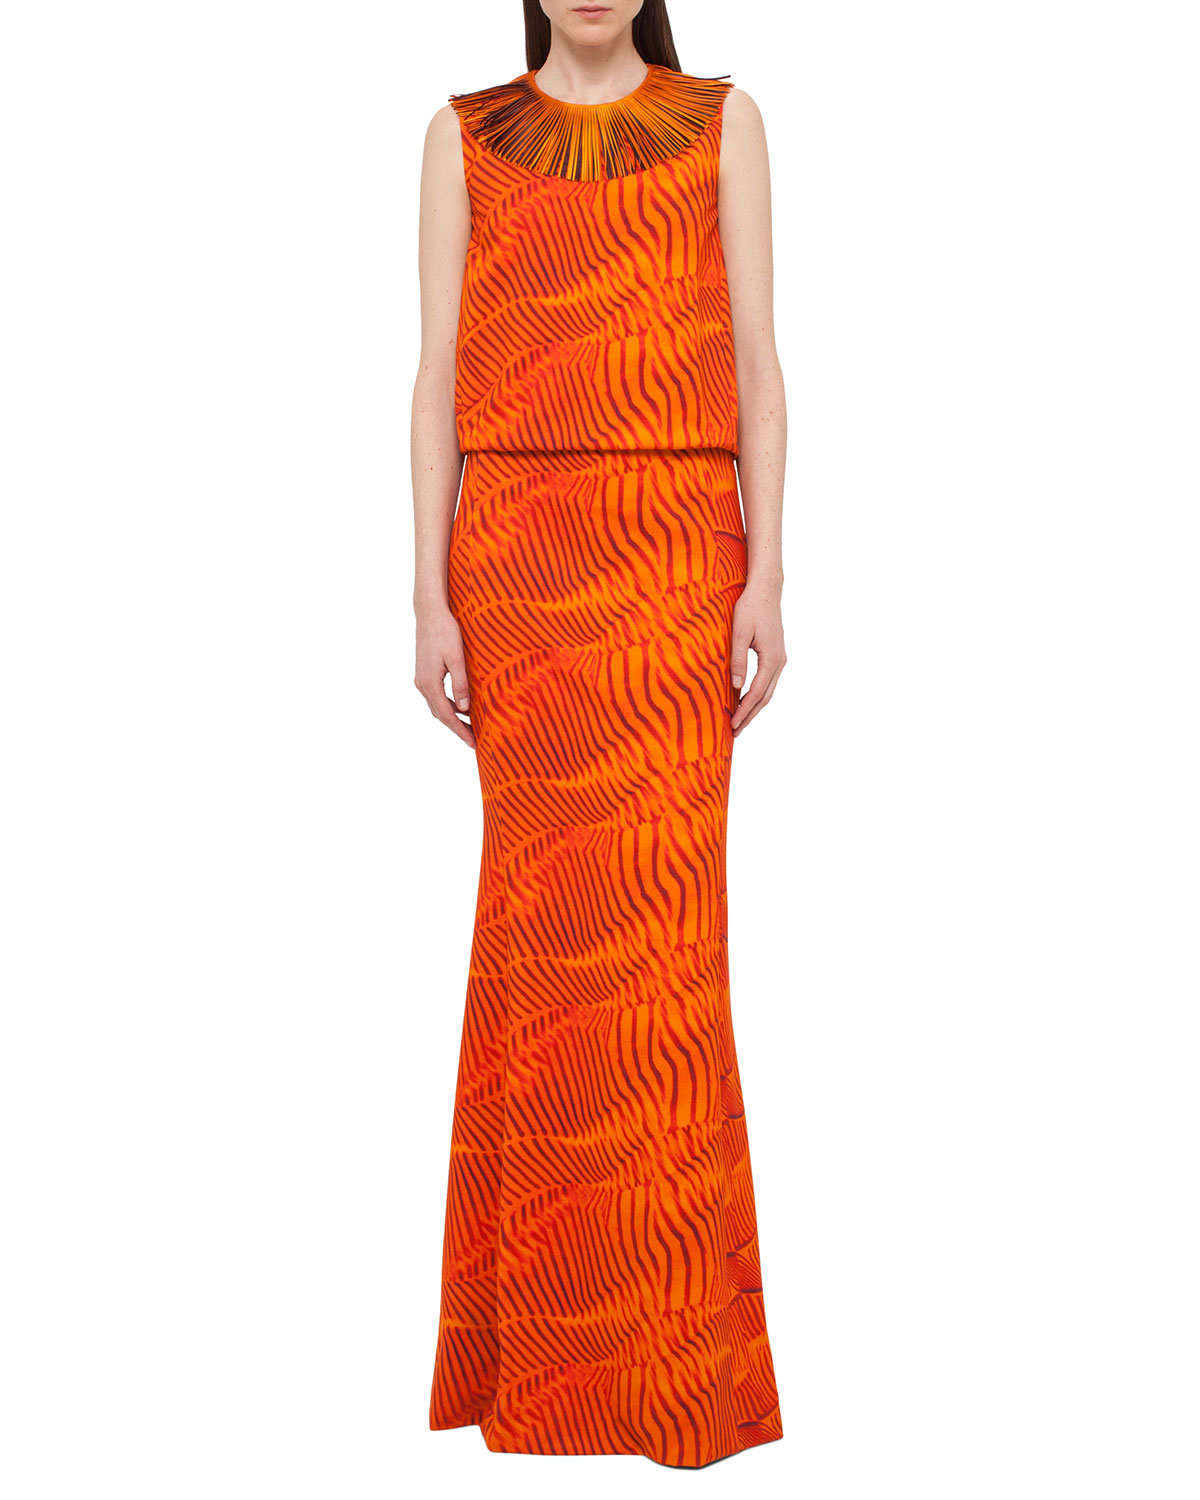 Zebra-Print Fringe-Collar Gown, Orange